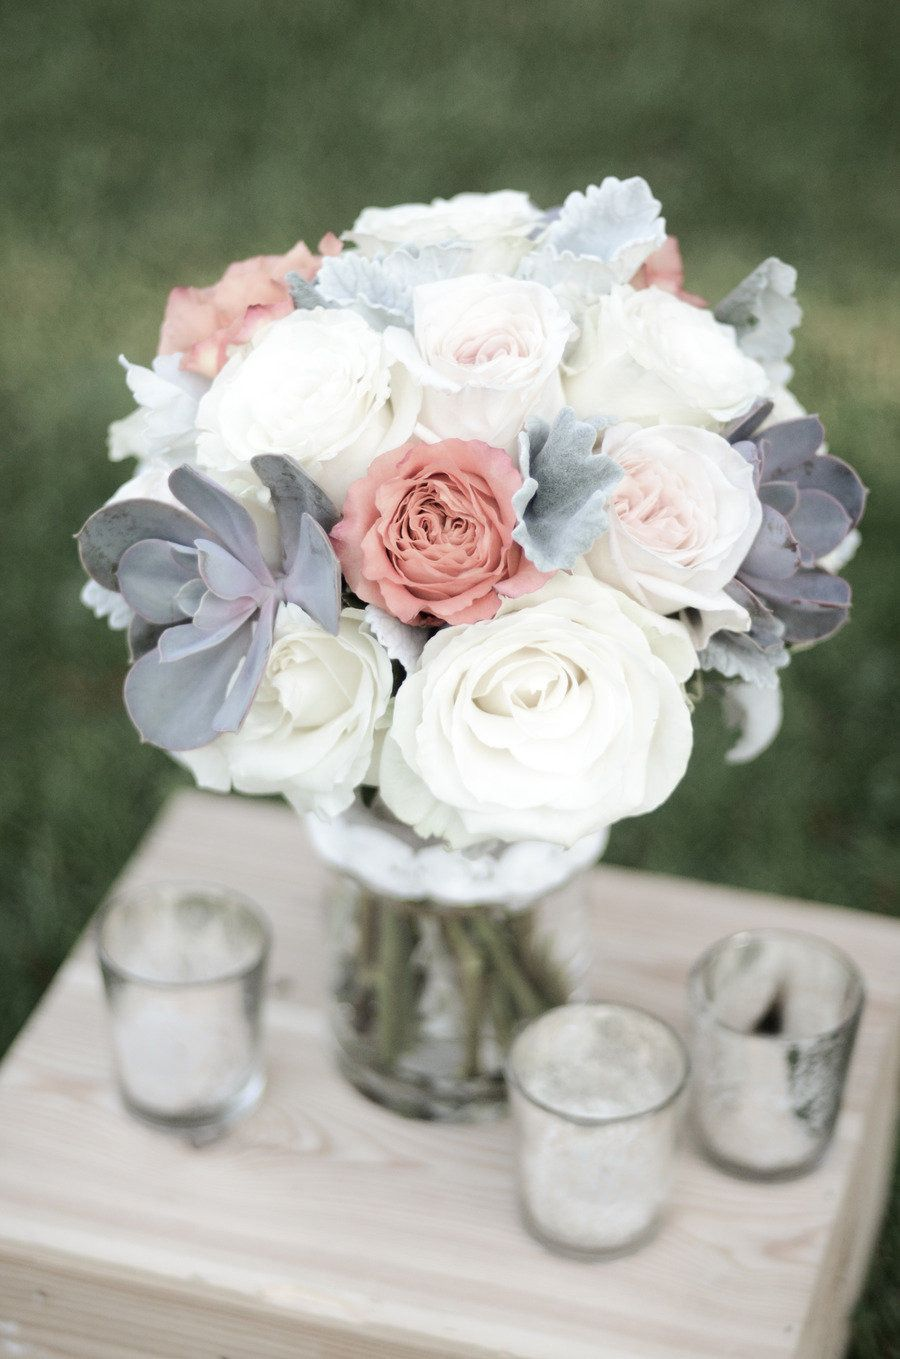 Brilliant Wedding Centerpiece Ideas | Pinterest | Wedding ...